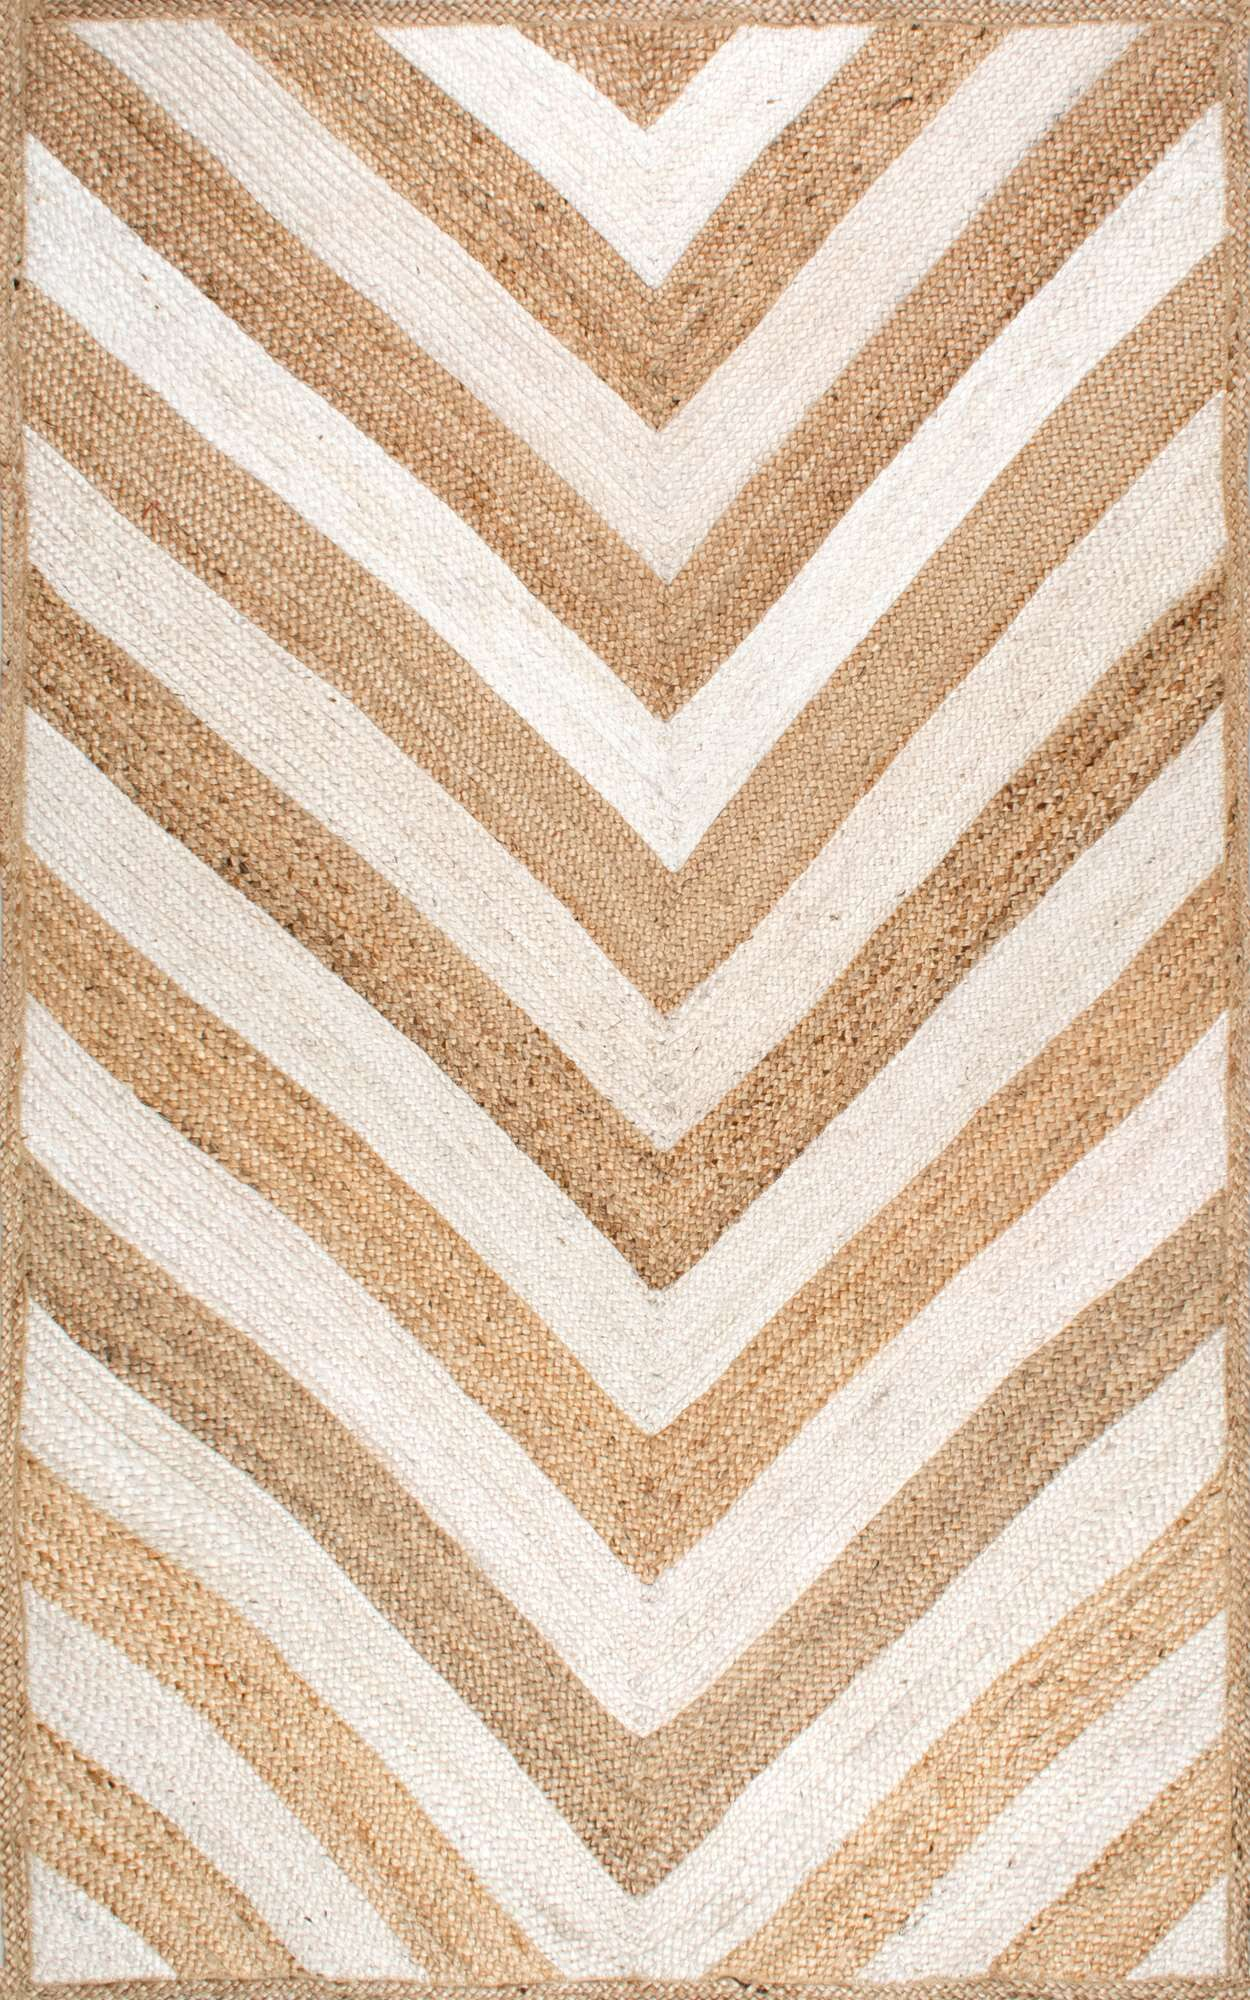 Cassandra Hand-Woven Natural Area Rug Rug Size: Rectangle 5' x 8'